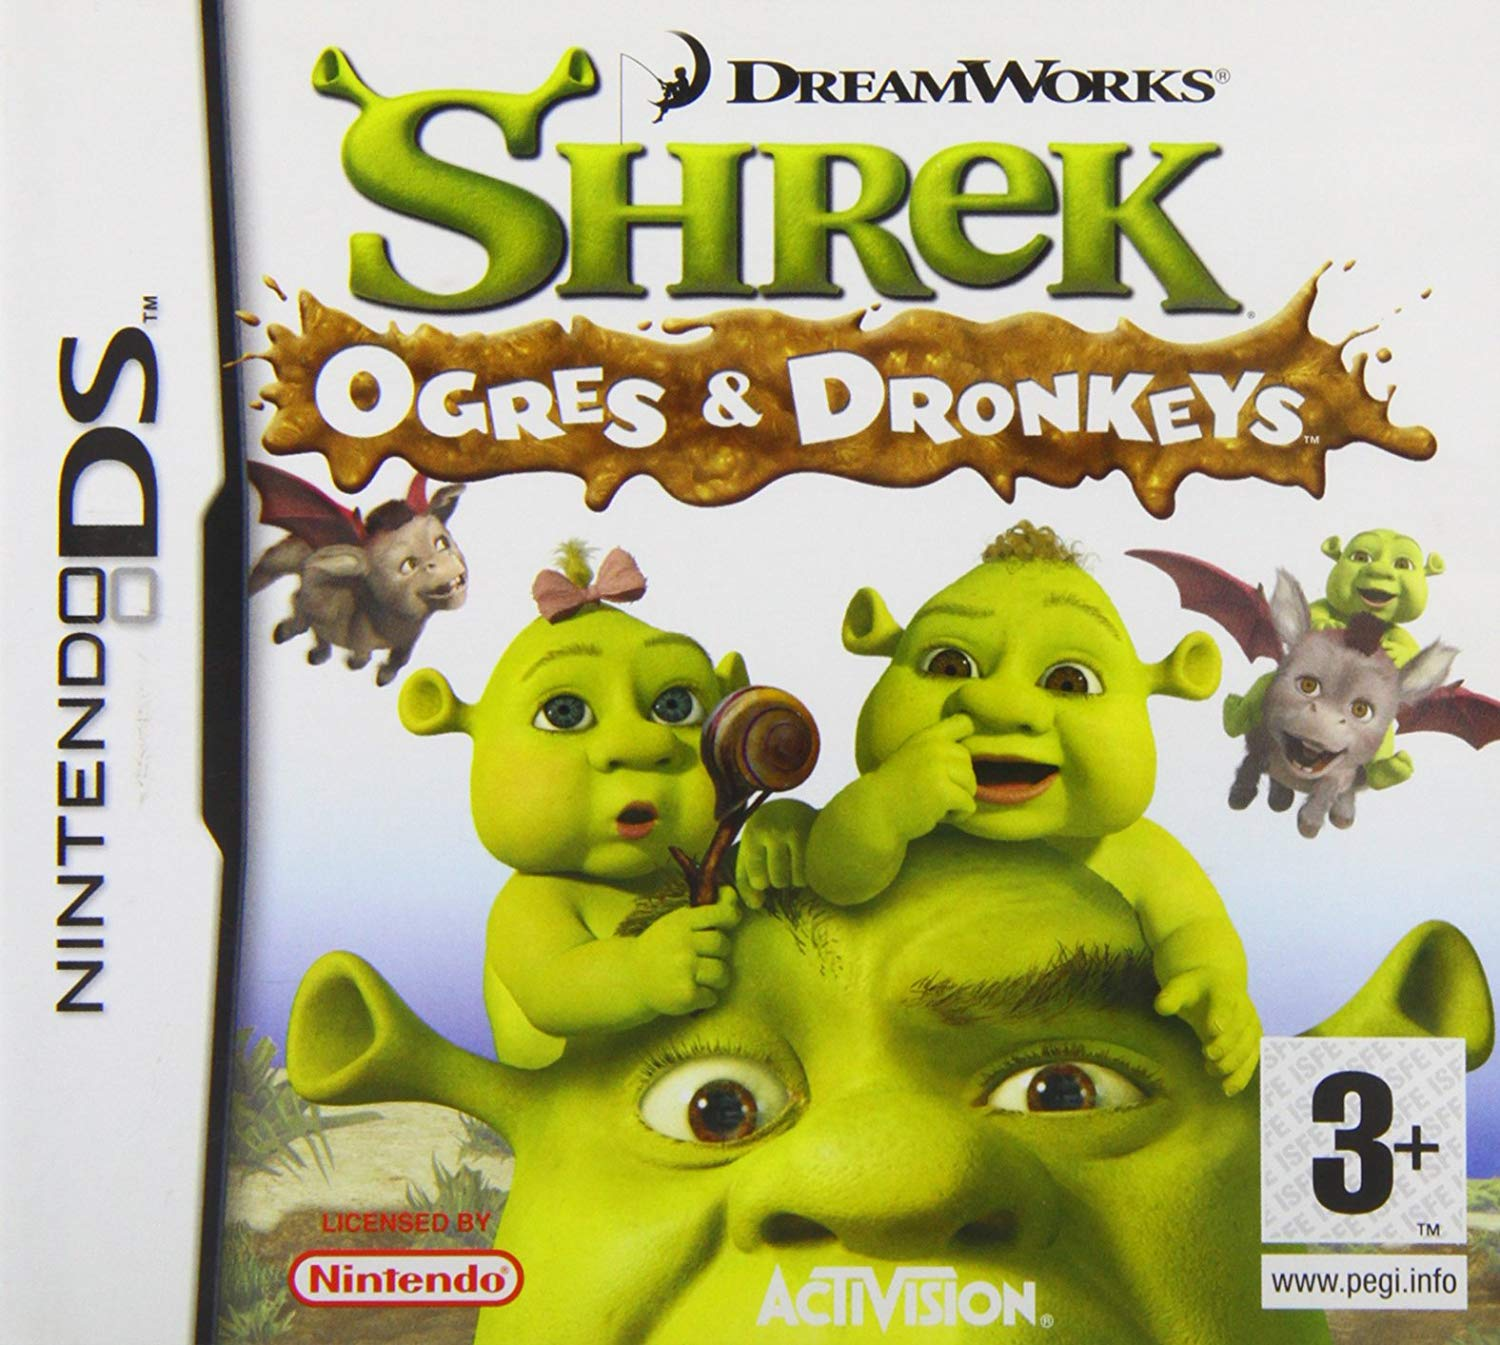 Dreamworks Ogres And Dronkeys - Nintendo DS Játékok